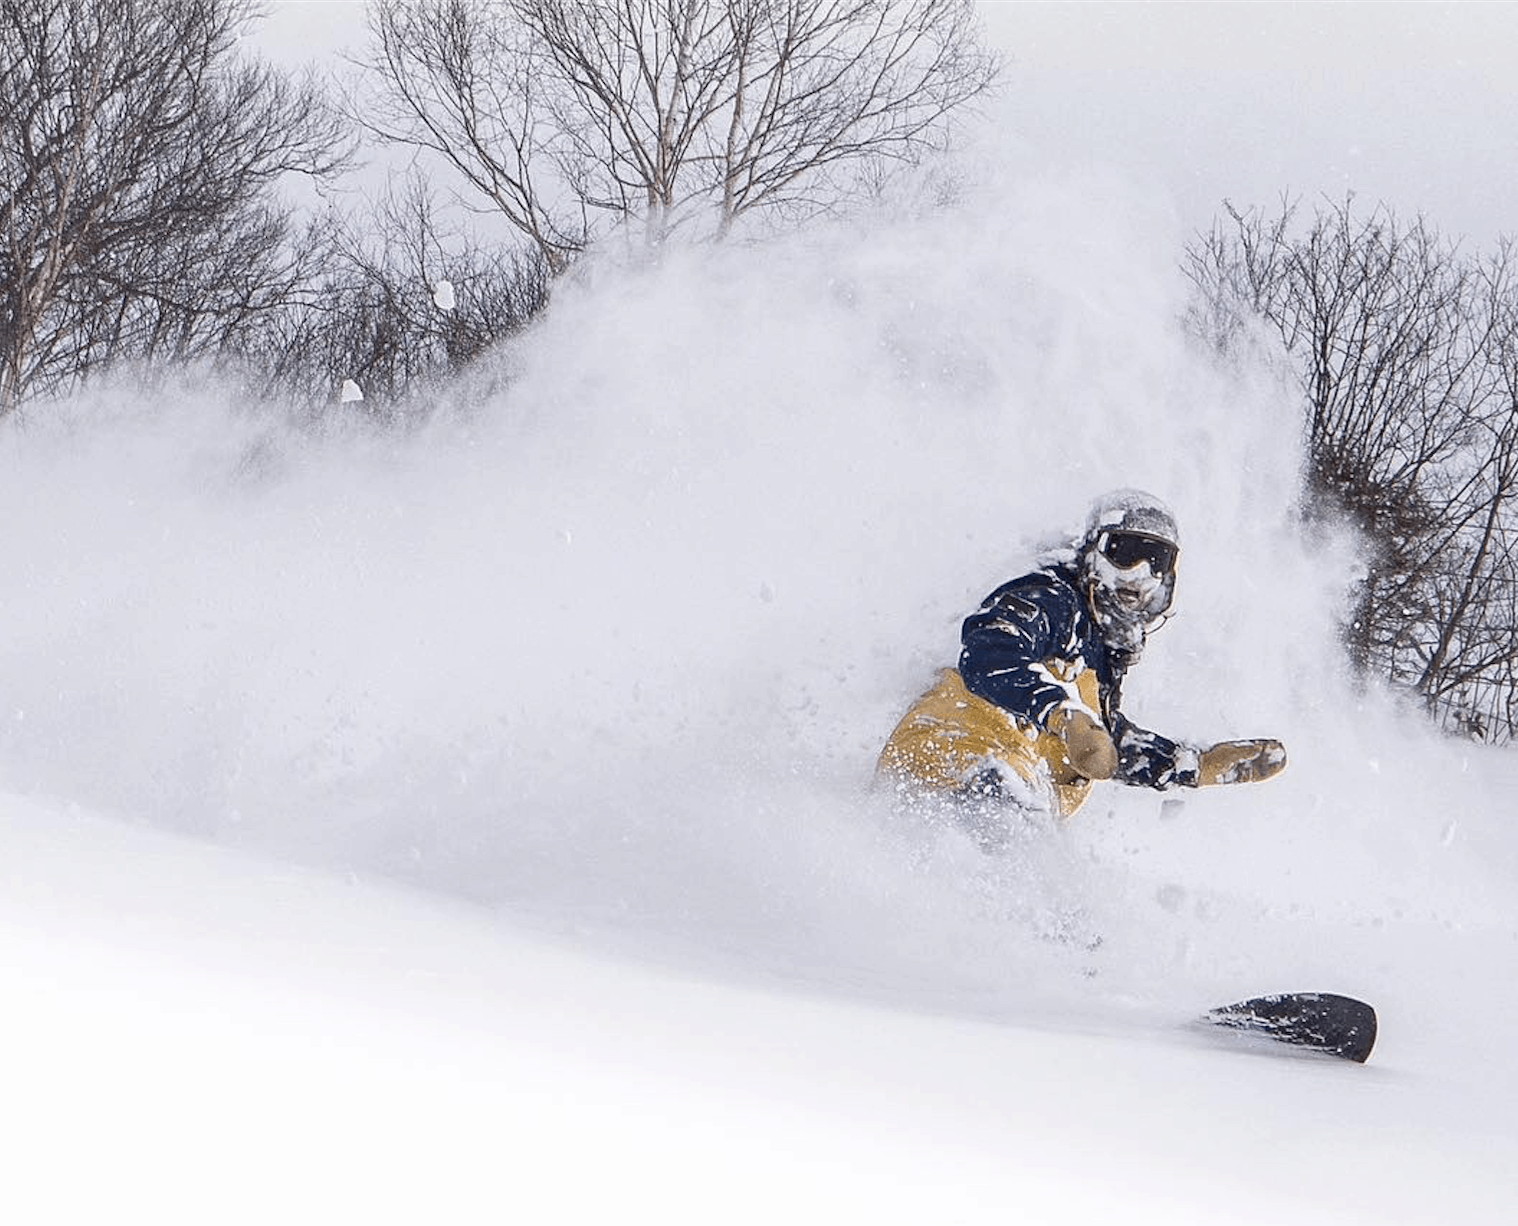 The Grasshopper's Weekly Japan Forecast - Powder day for Honshu and